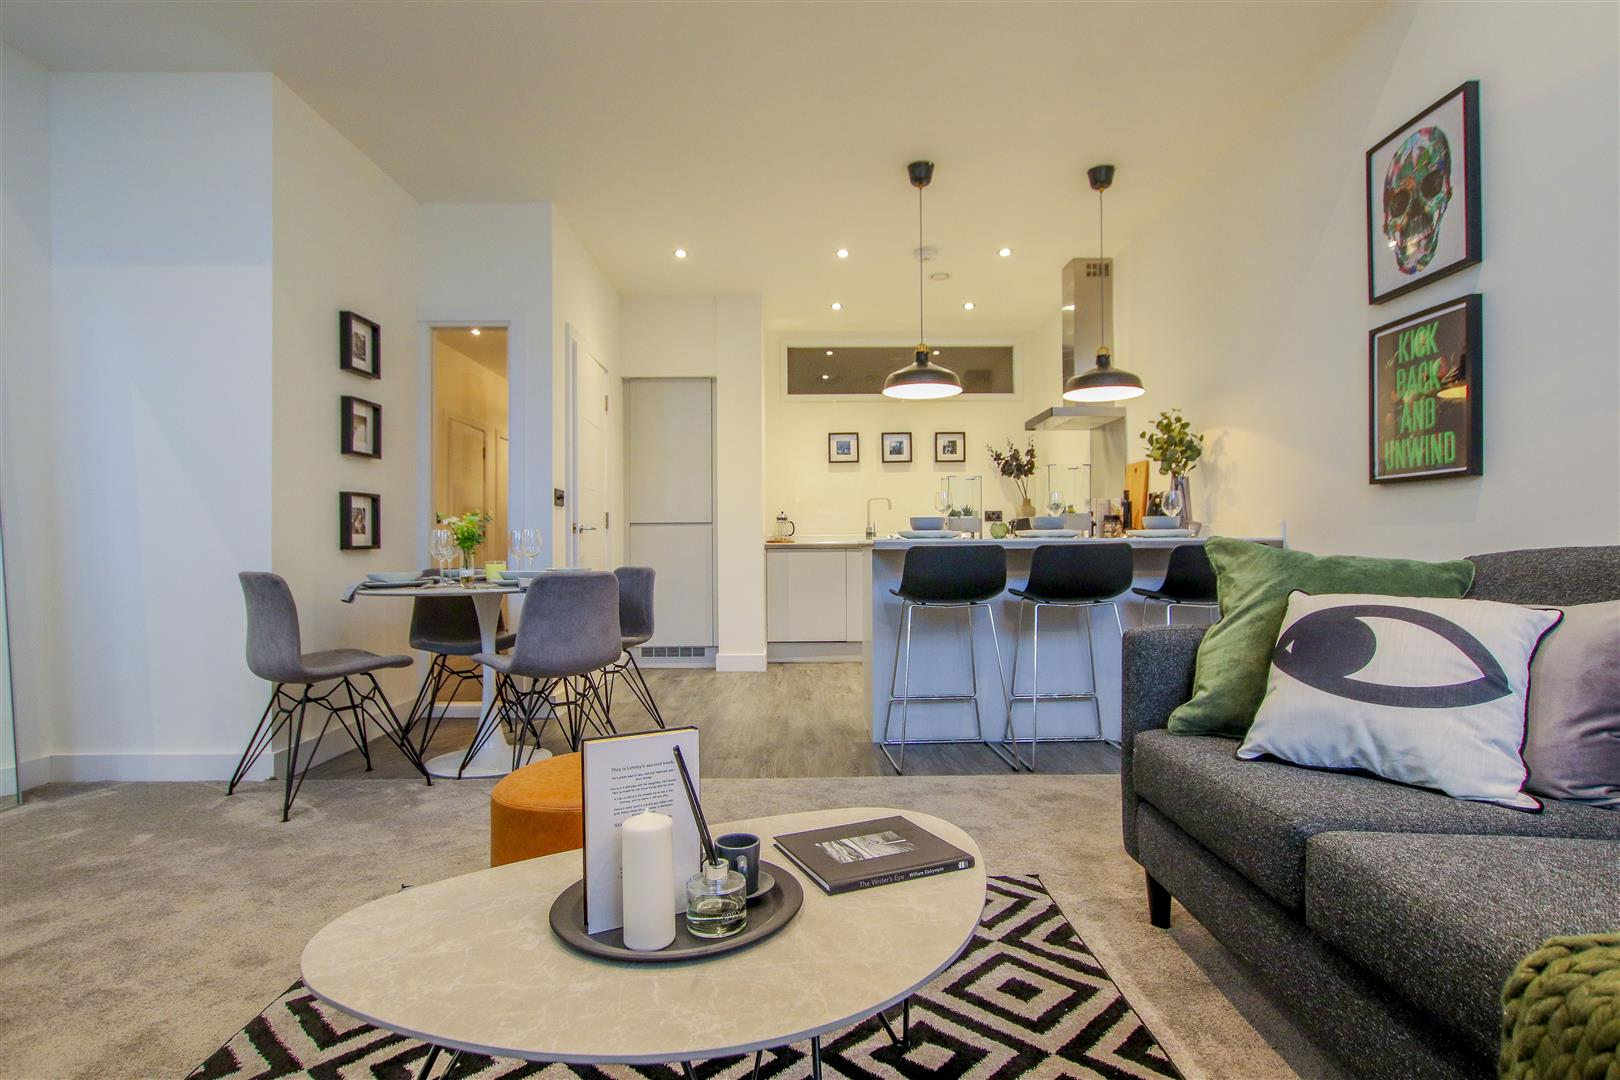 2 Bedroom Apartment For Sale - 28.JPG